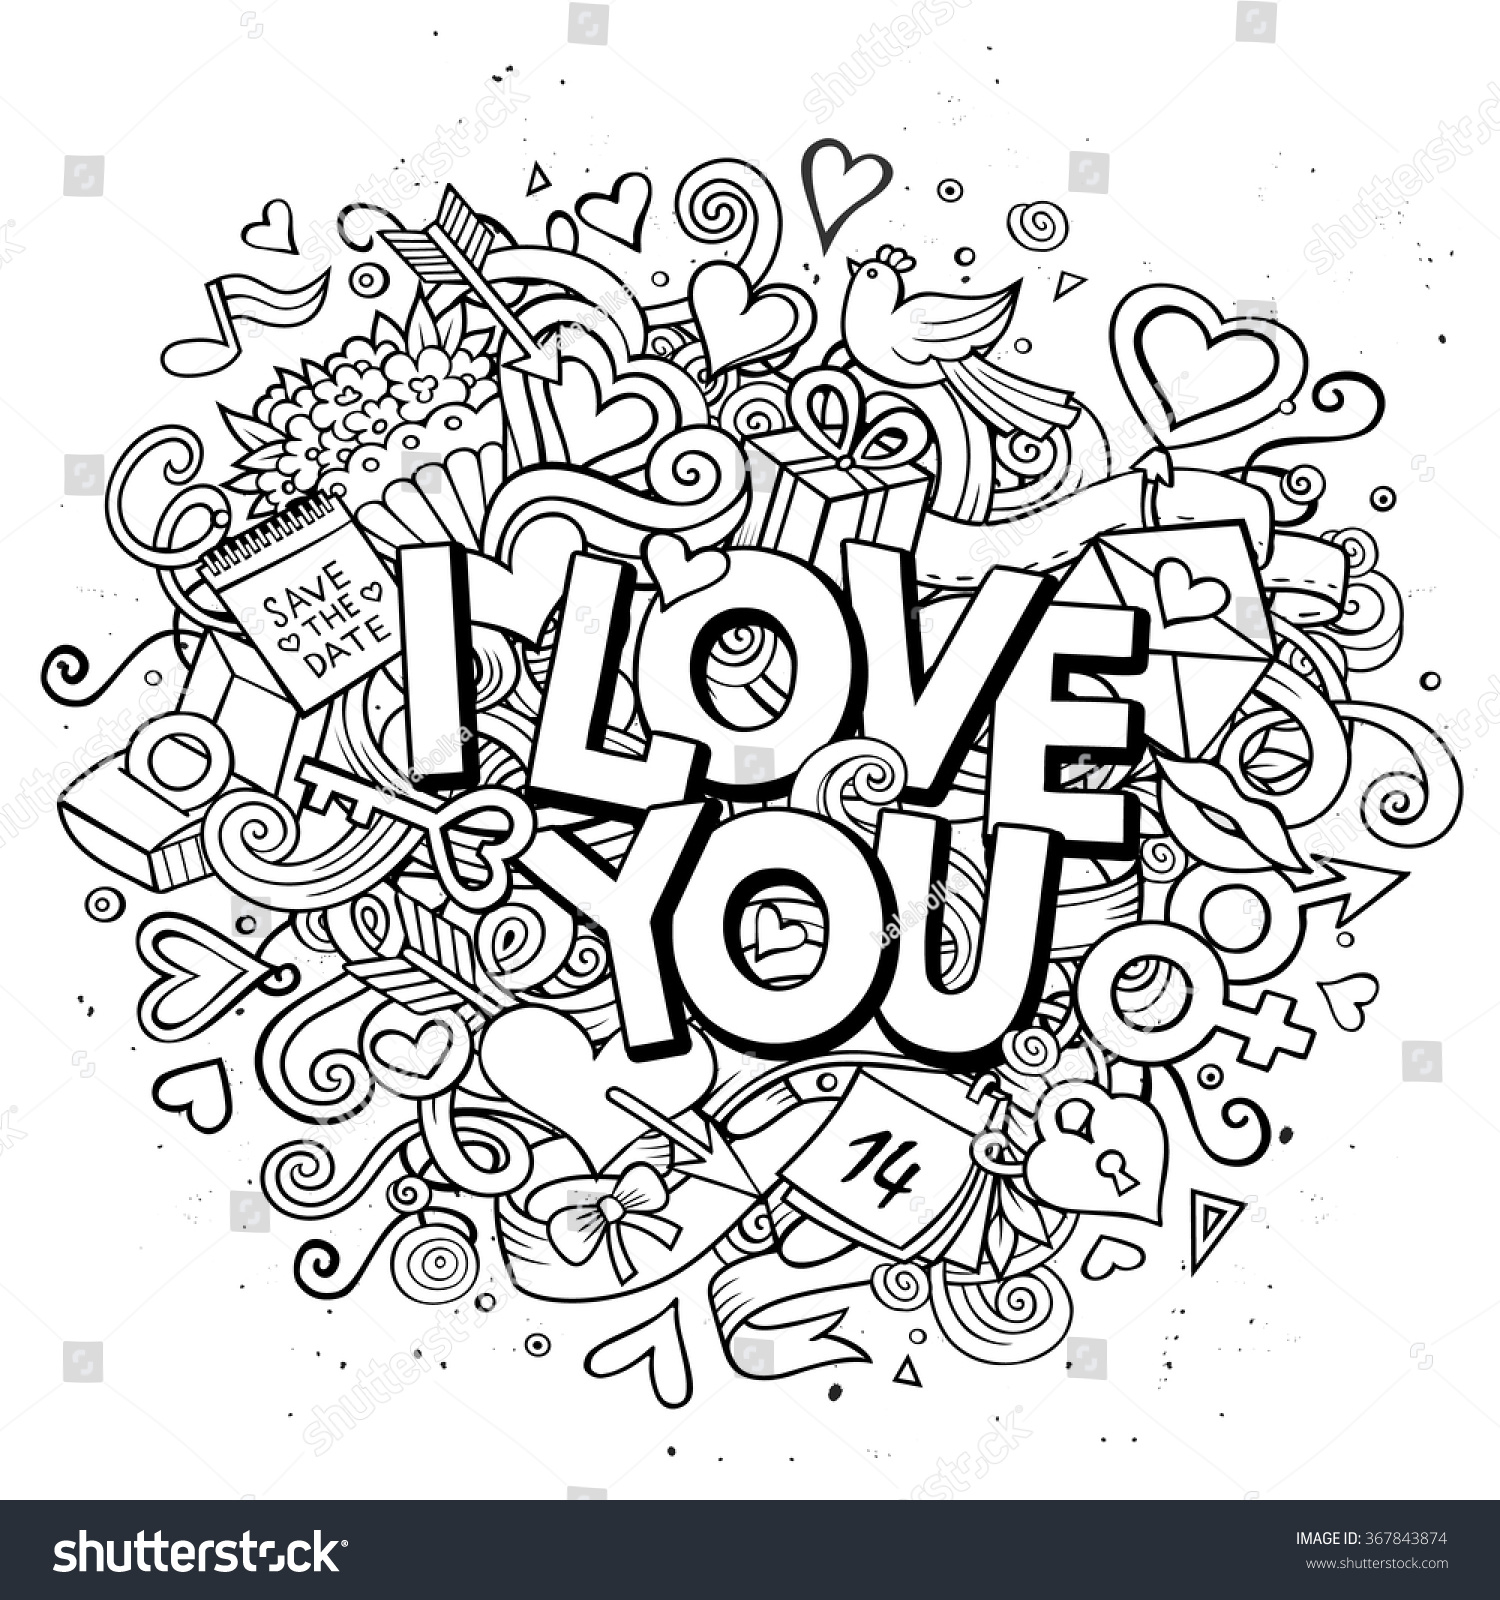 Cartoon Vector Hand Drawn Doodle Love Stock Vector Royalty Free 367843874